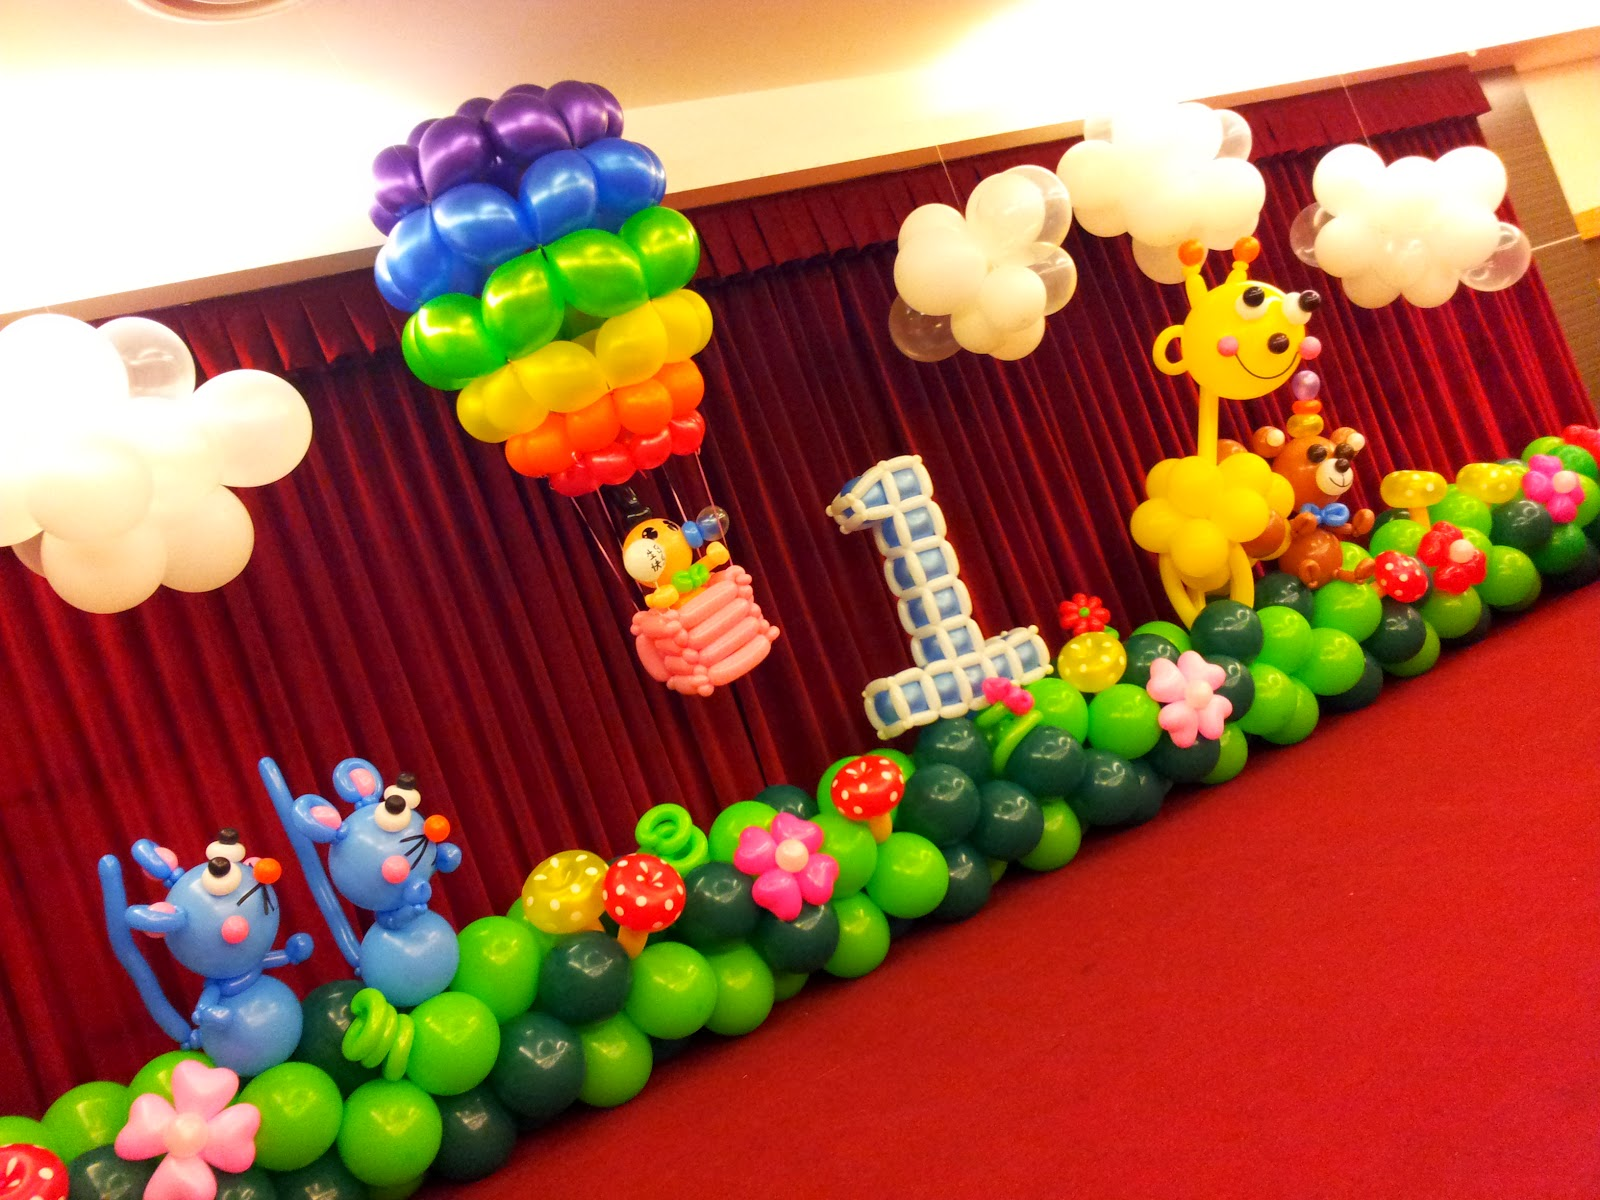 Rb planners event planners and decorators party room for Balloon decoration for 1st birthday